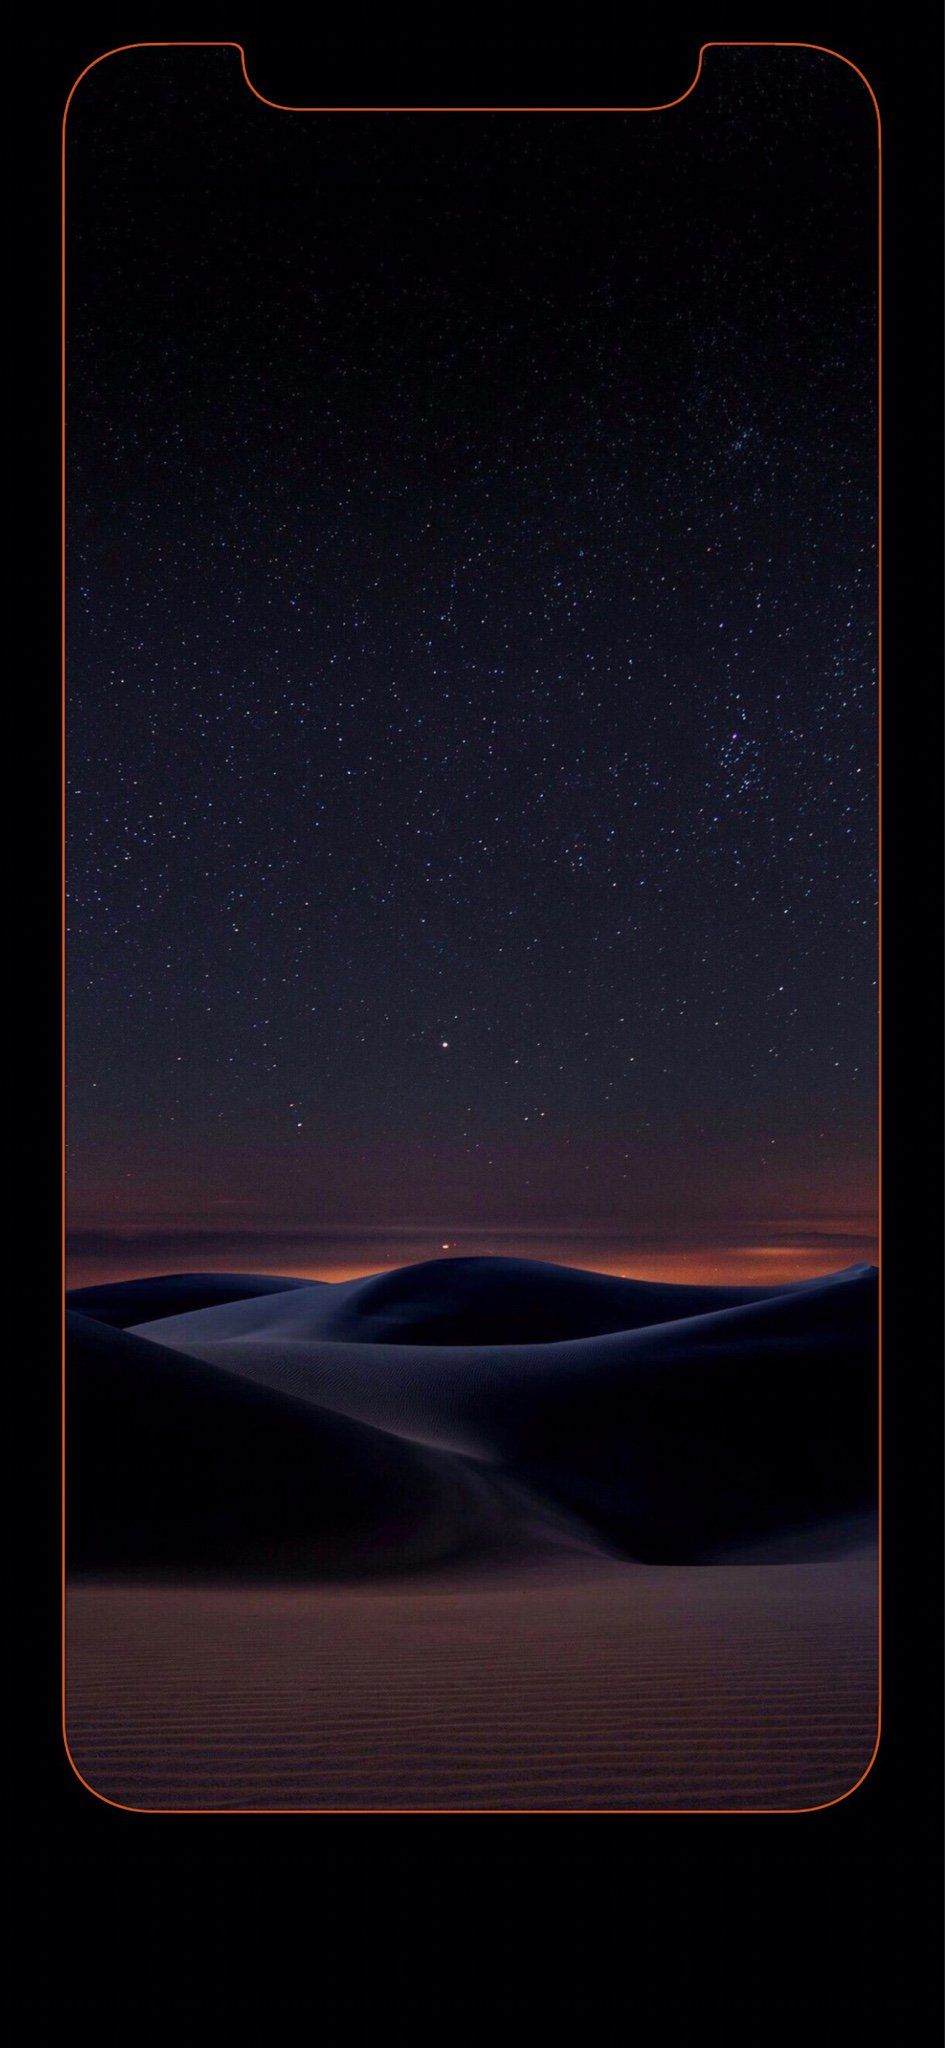 The iPhone X/Xs Wallpaper Thread Page 55 iPhone, iPad